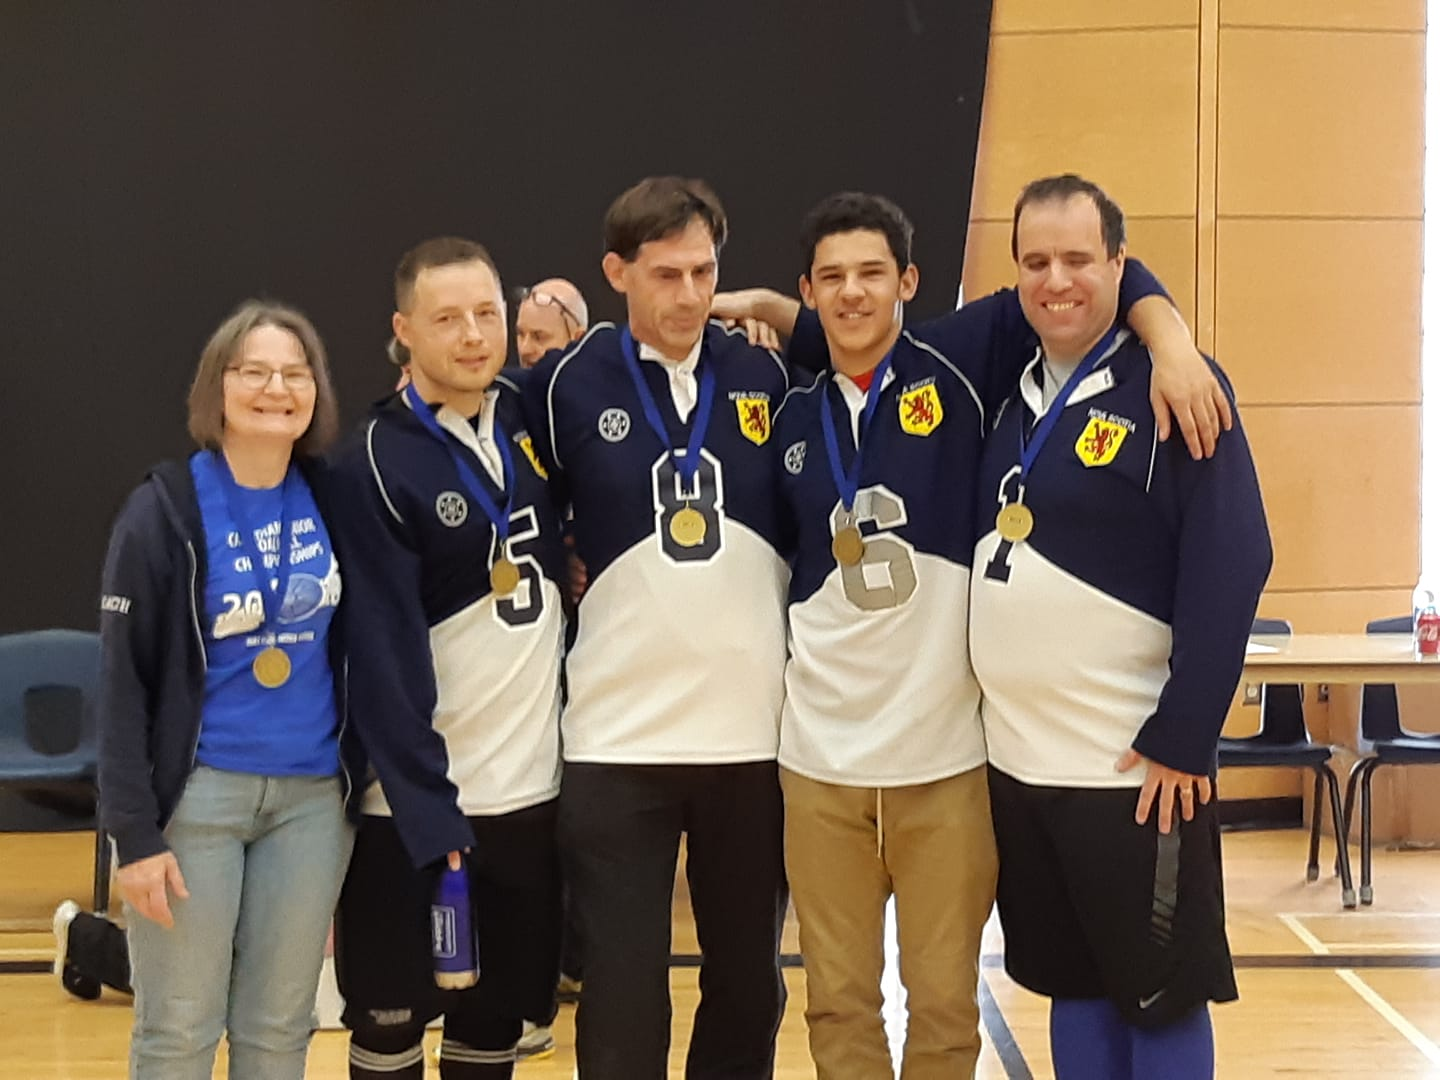 Gold Medal winning team, Nova Scotia 1 Linda MacRae Triff, Peter Parsons, Oliver Pye, Mason Smith, and John Courtney